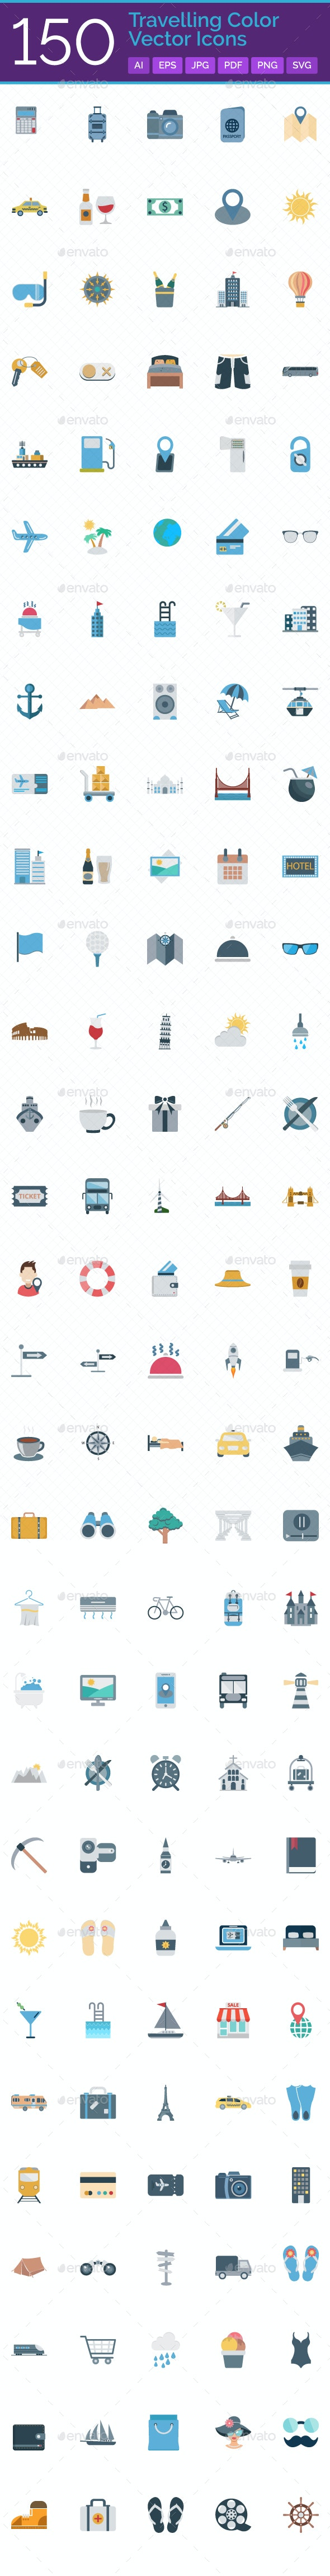 150 Travelling Vector Icons Set - Icons